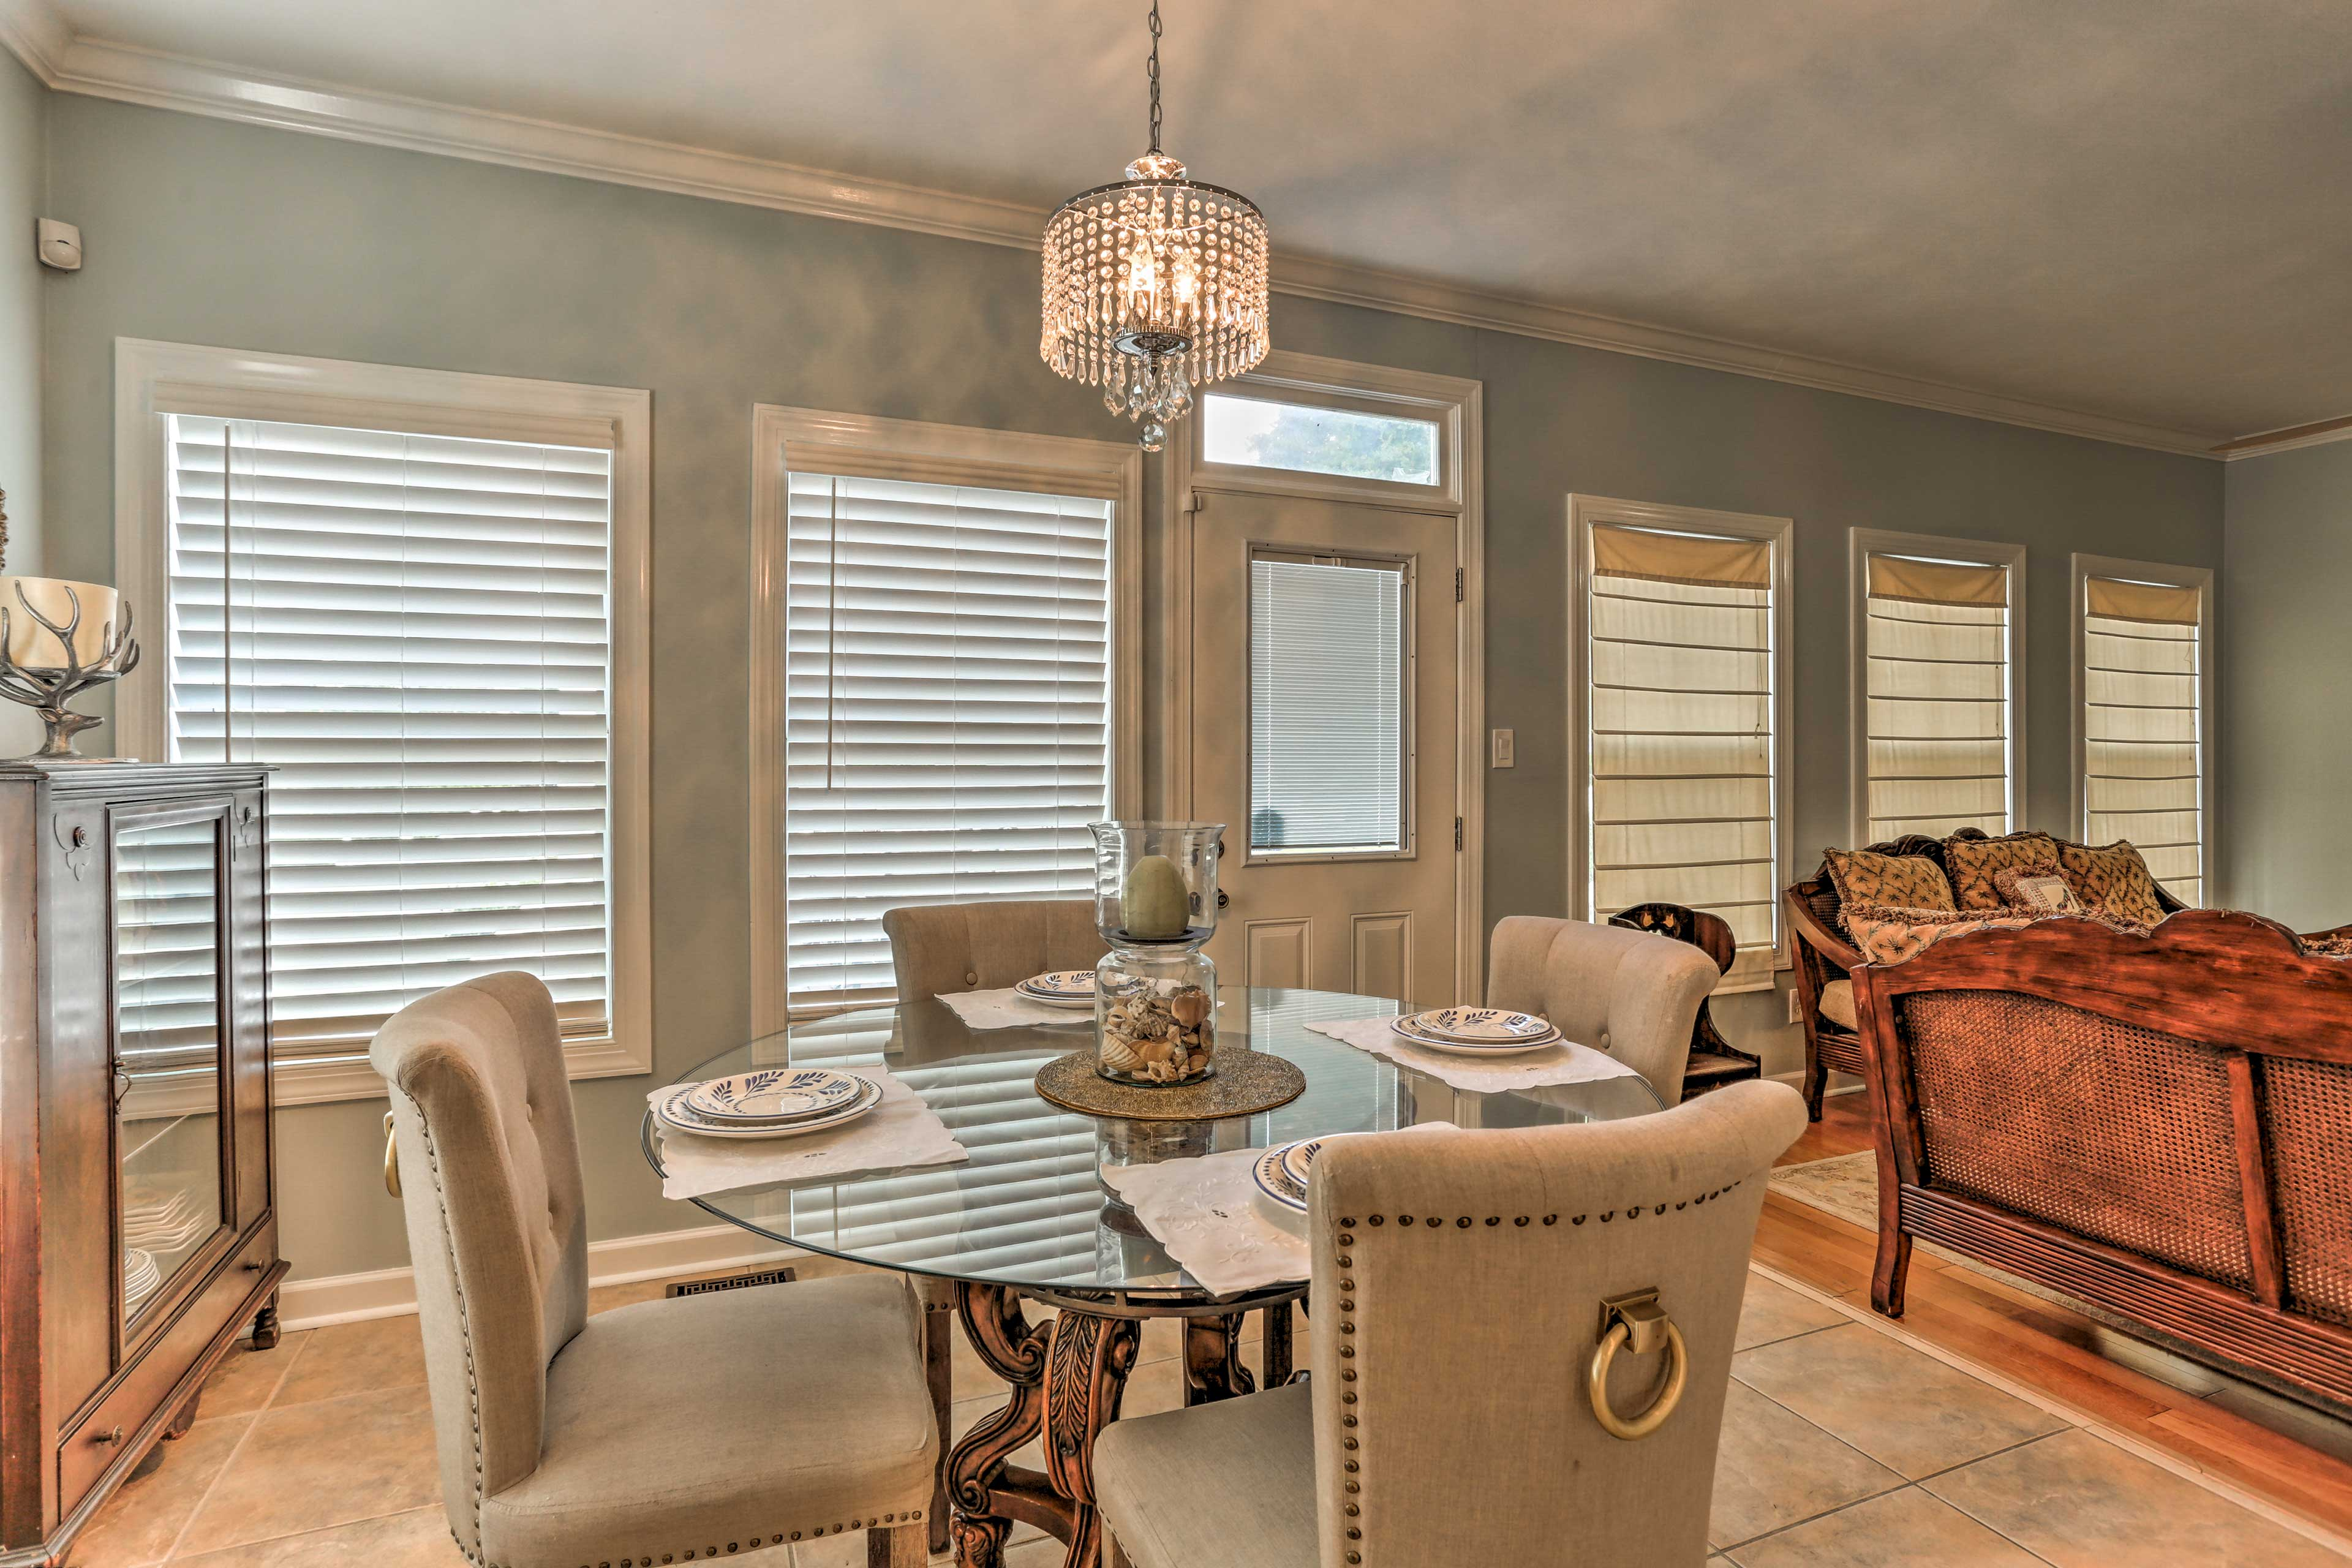 This breakfast table is the perfect place to savor morning coffee and toast.